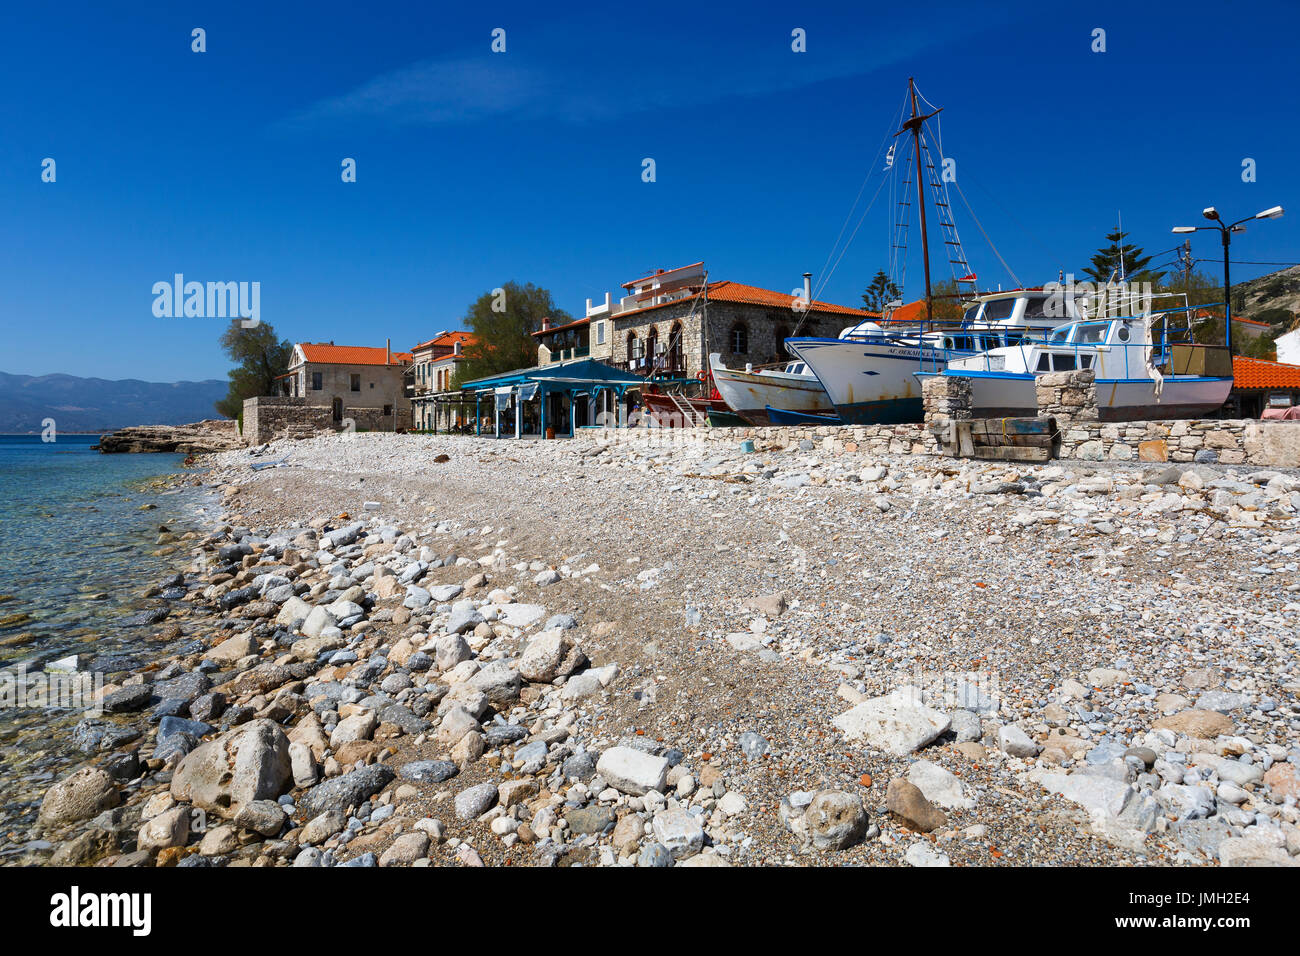 Harbour of Pythagorio town on Samos island, Greece. Stock Photo